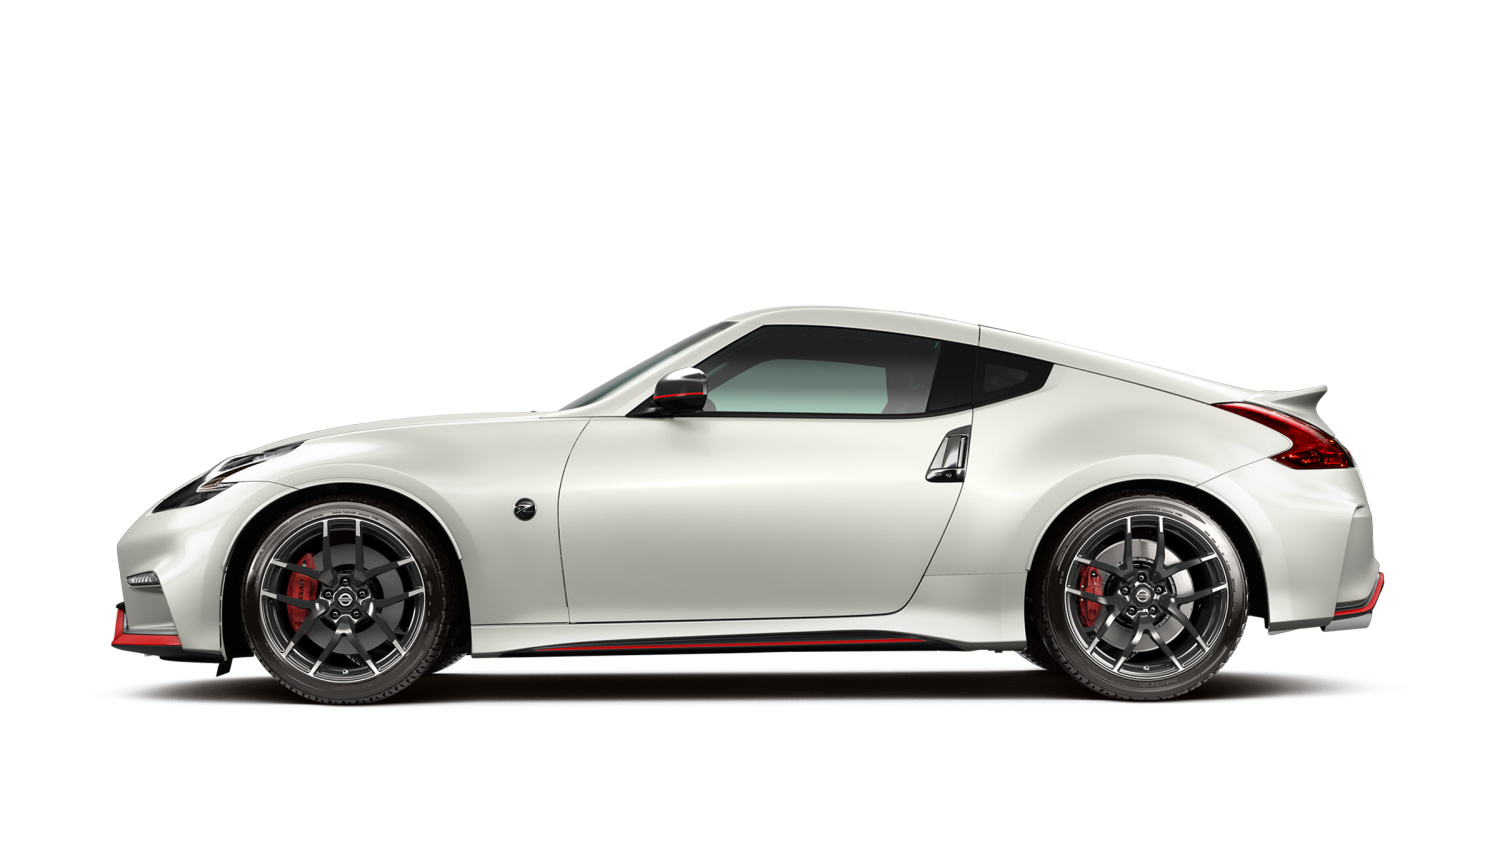 76 The 2019 Nissan 370Z Redesign Price and Review with 2019 Nissan 370Z Redesign